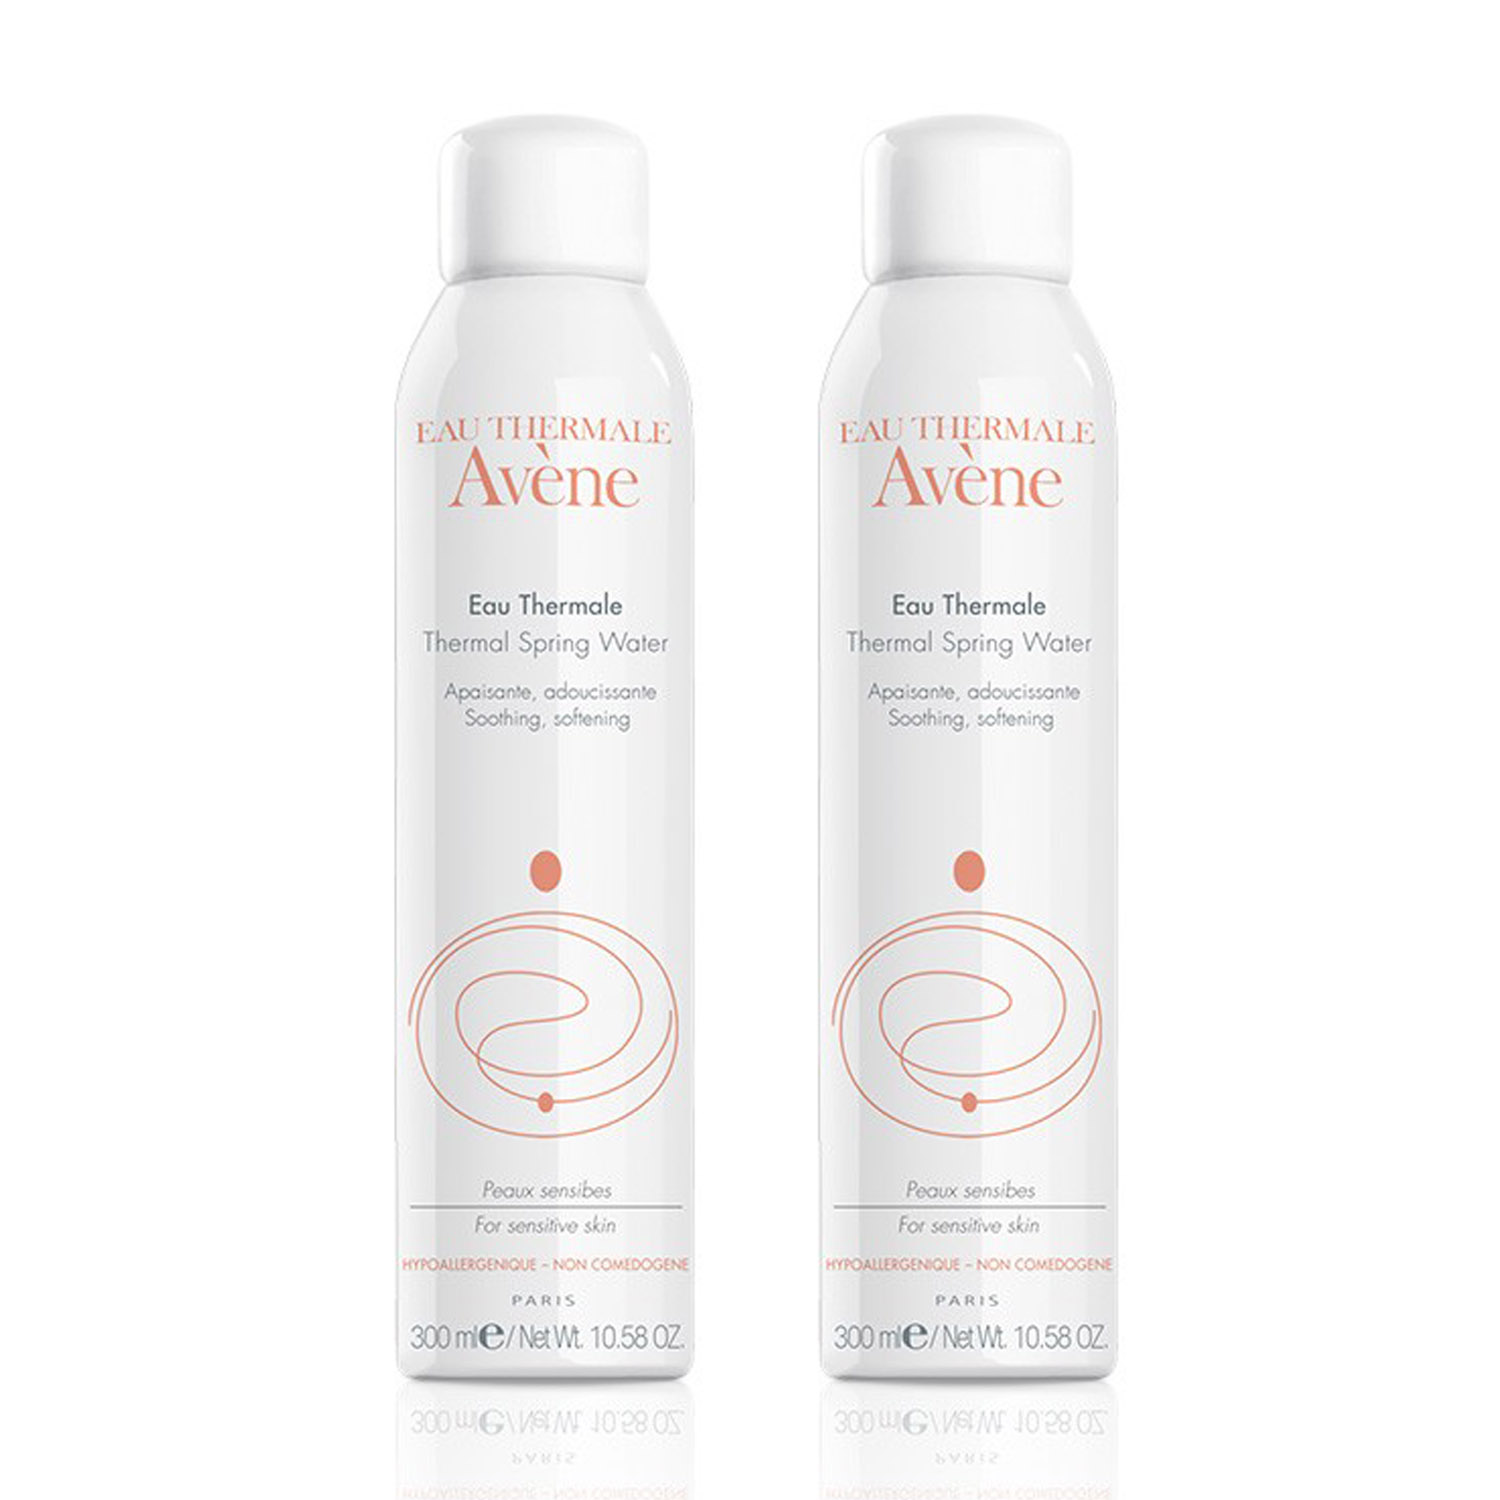 """""""Avene Thermal Spring Water 300 ml Duo includes a duo set of the best-selling Avene Thermal Spring Water to help naturally calm, soothe and soften the skin."""""""